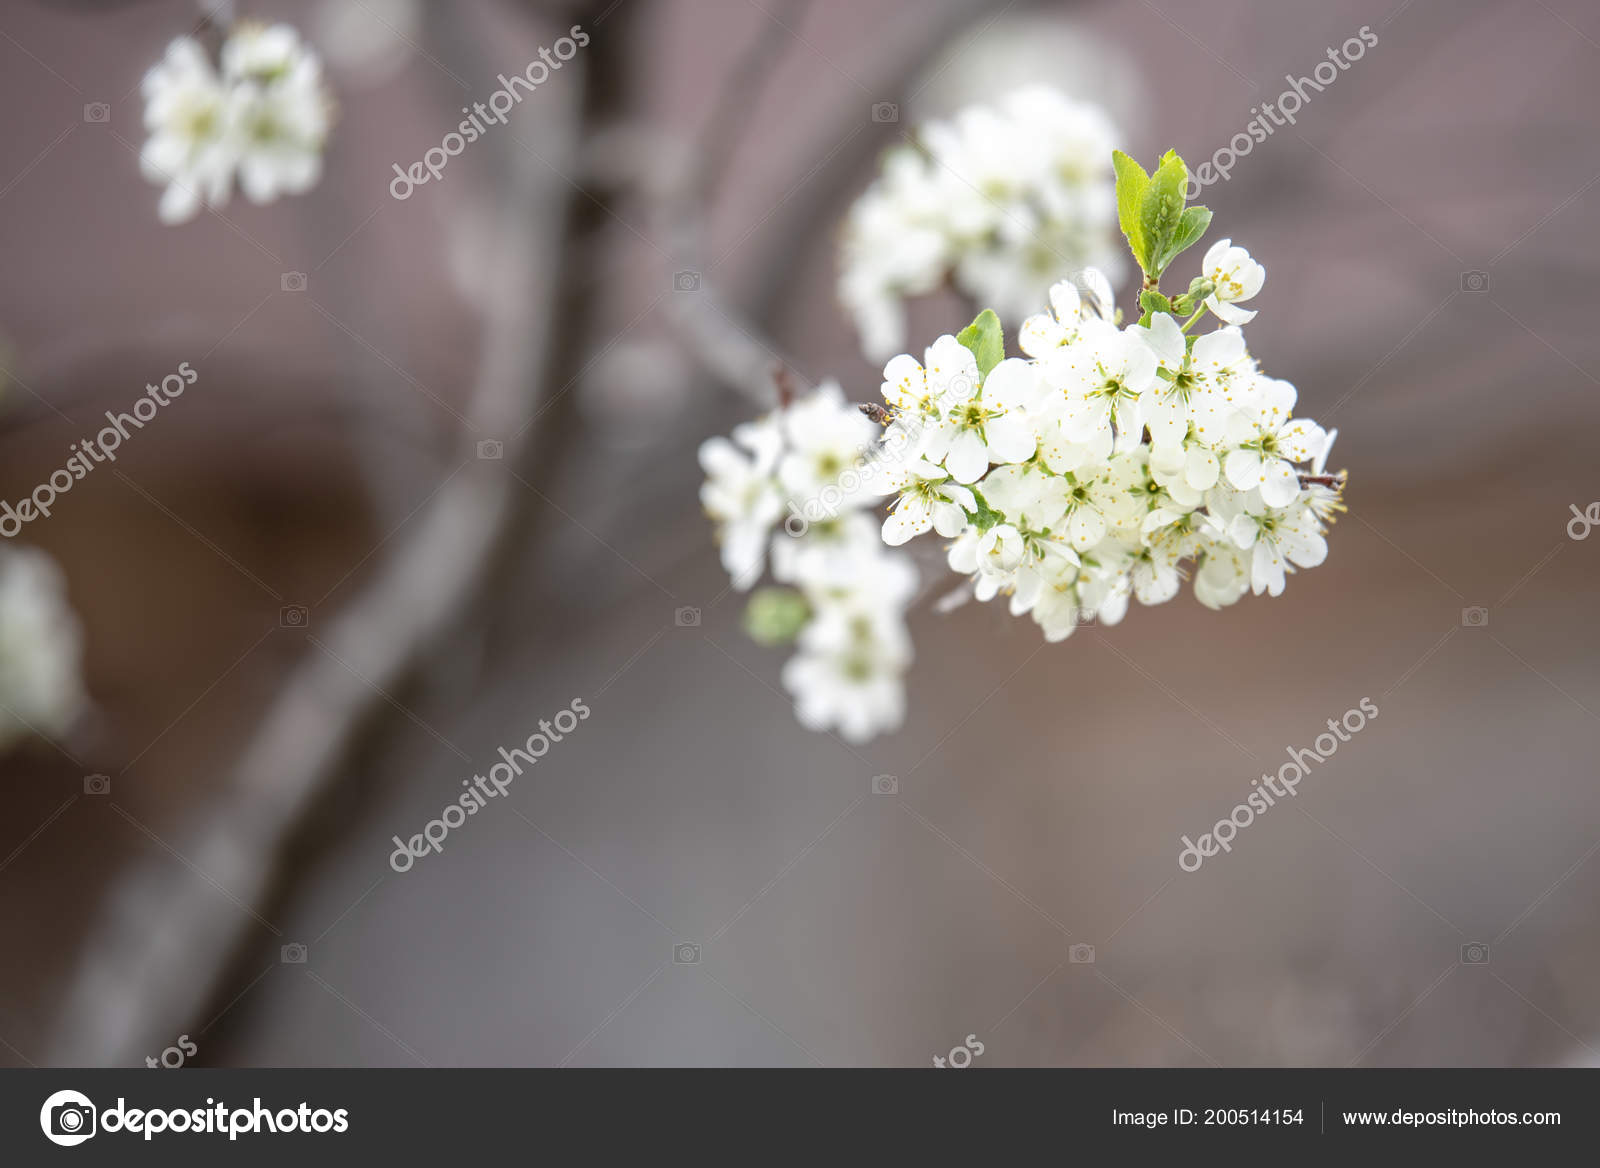 Beautiful white spring flowers of a flowering tree stok foto beautiful white spring flowers of a flowering tree on a branch manhattan001 fotoraf mightylinksfo